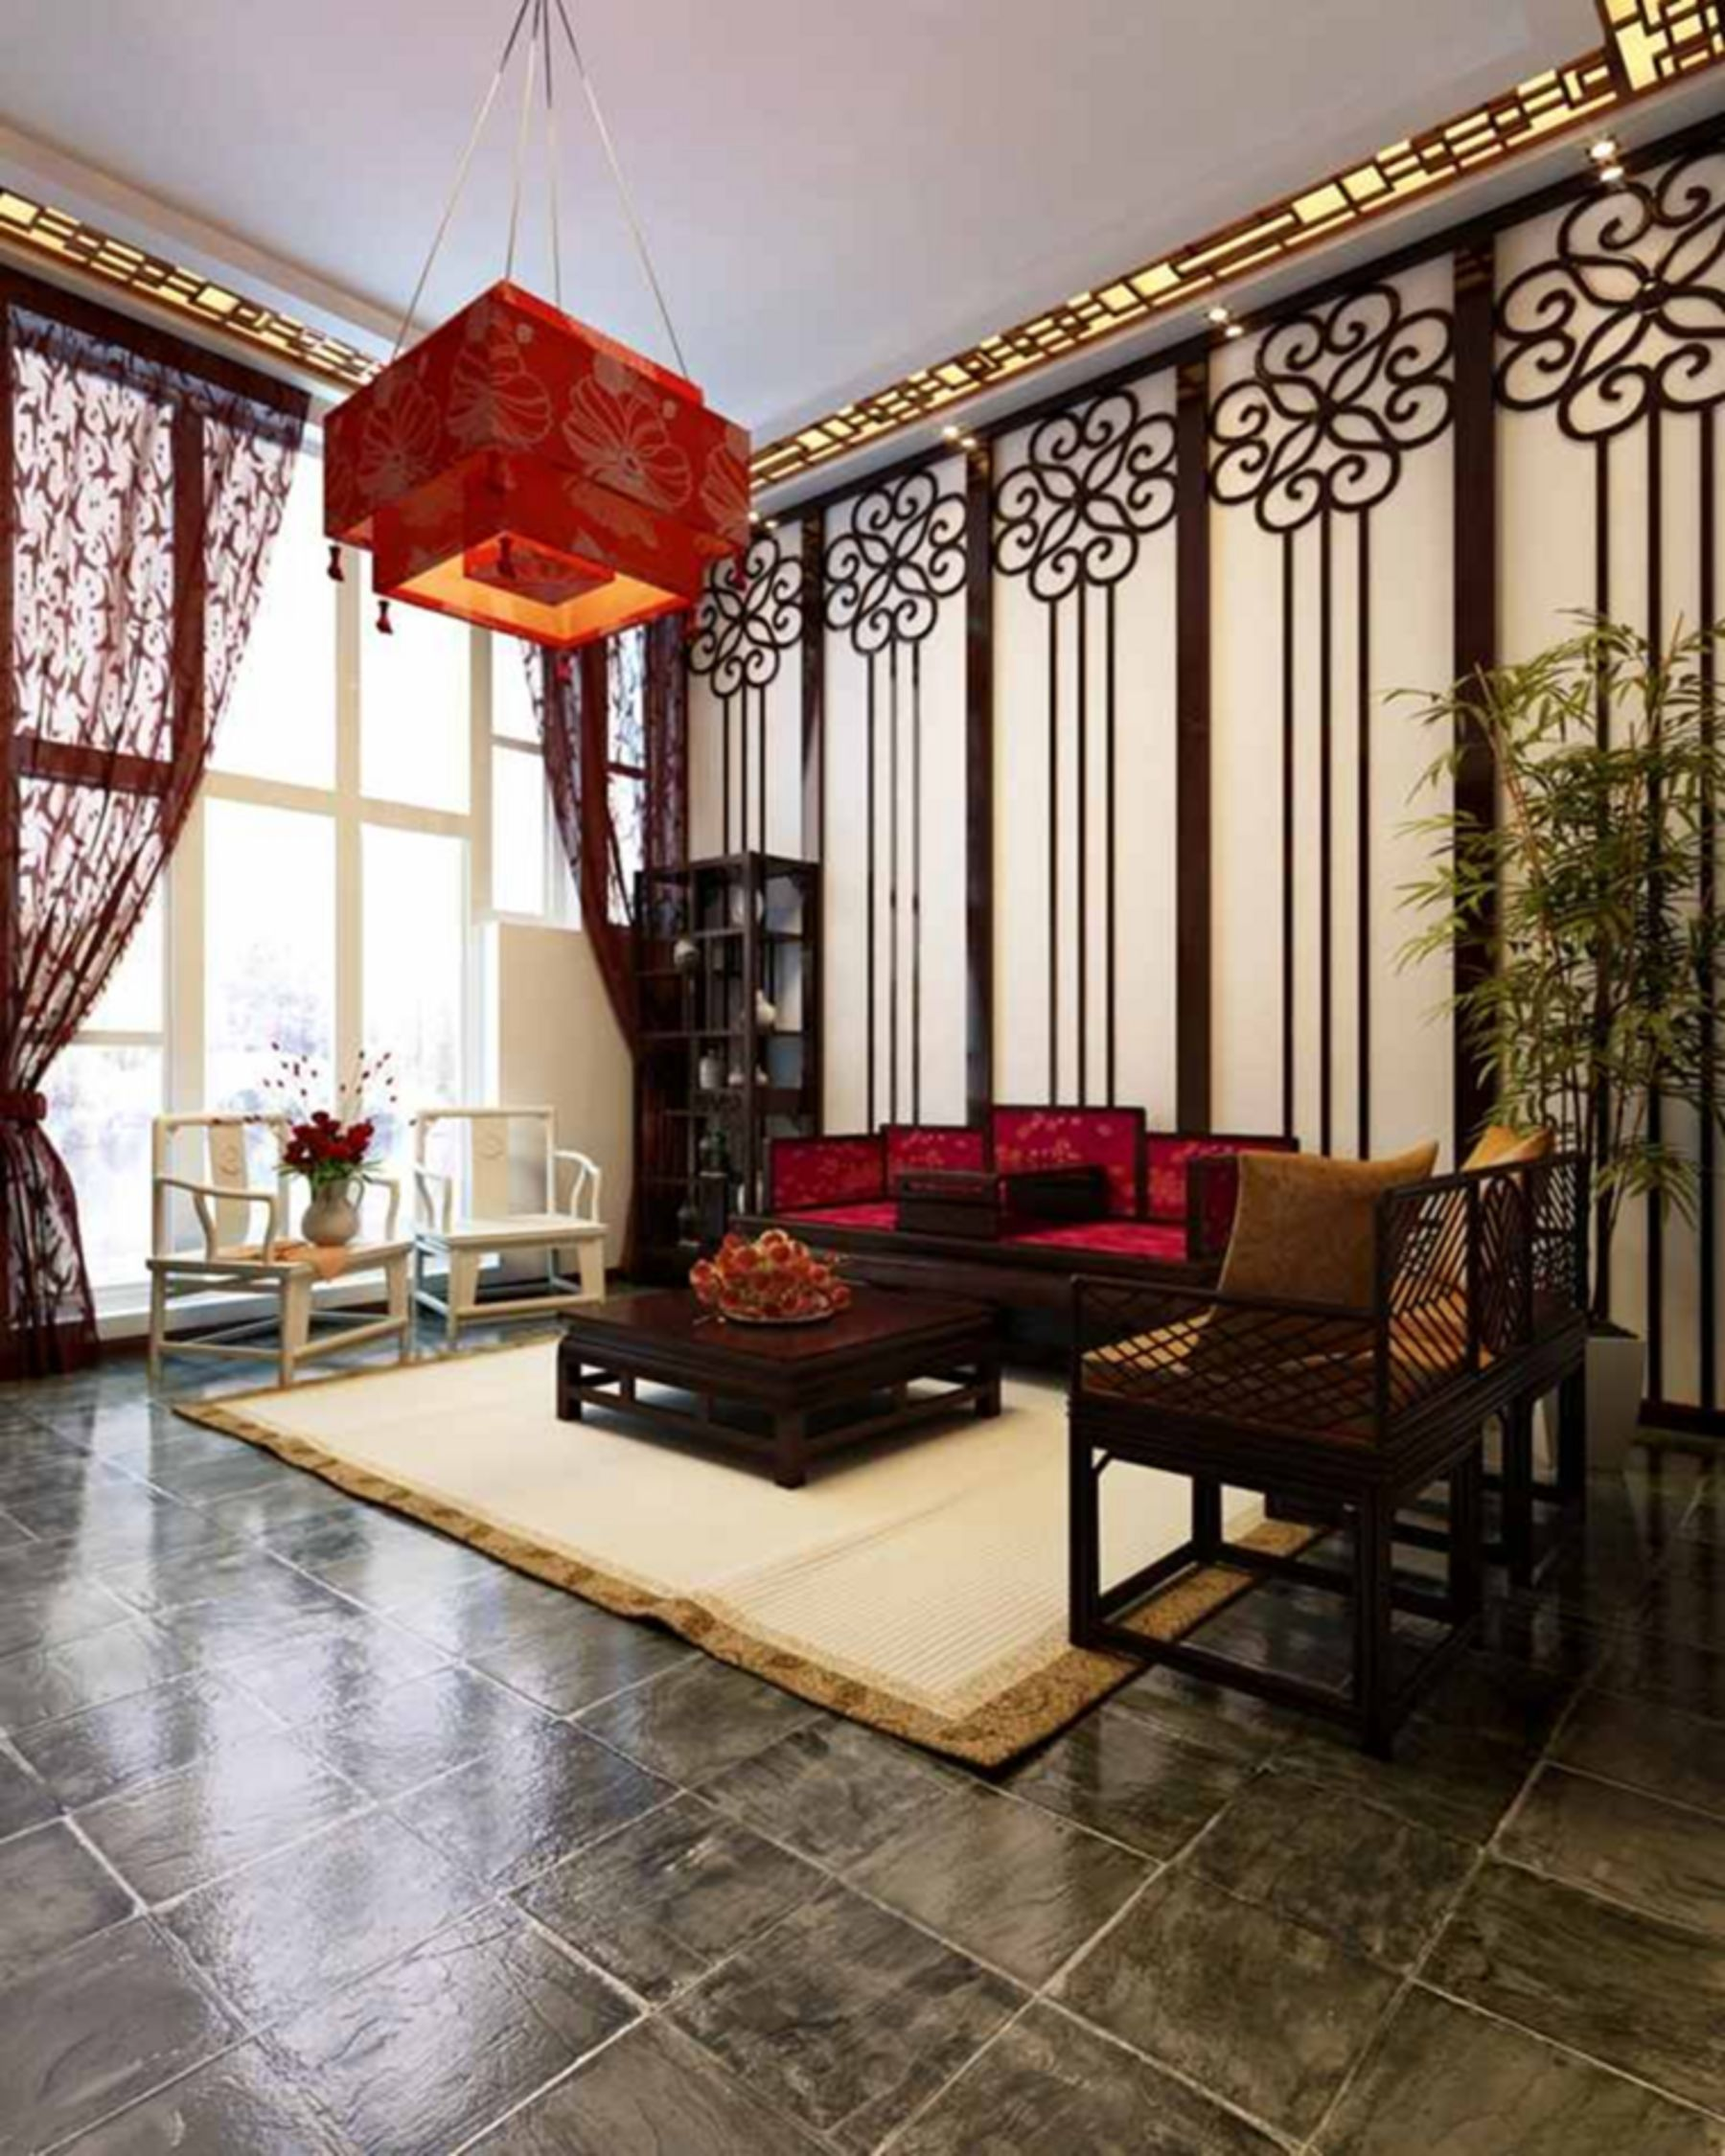 Outstanding 9 Beautiful Living Room Design And Decoration To Make Your Chinese New Year Happy Https Asian Living Rooms Asian Decor Living Room Asian Home Decor